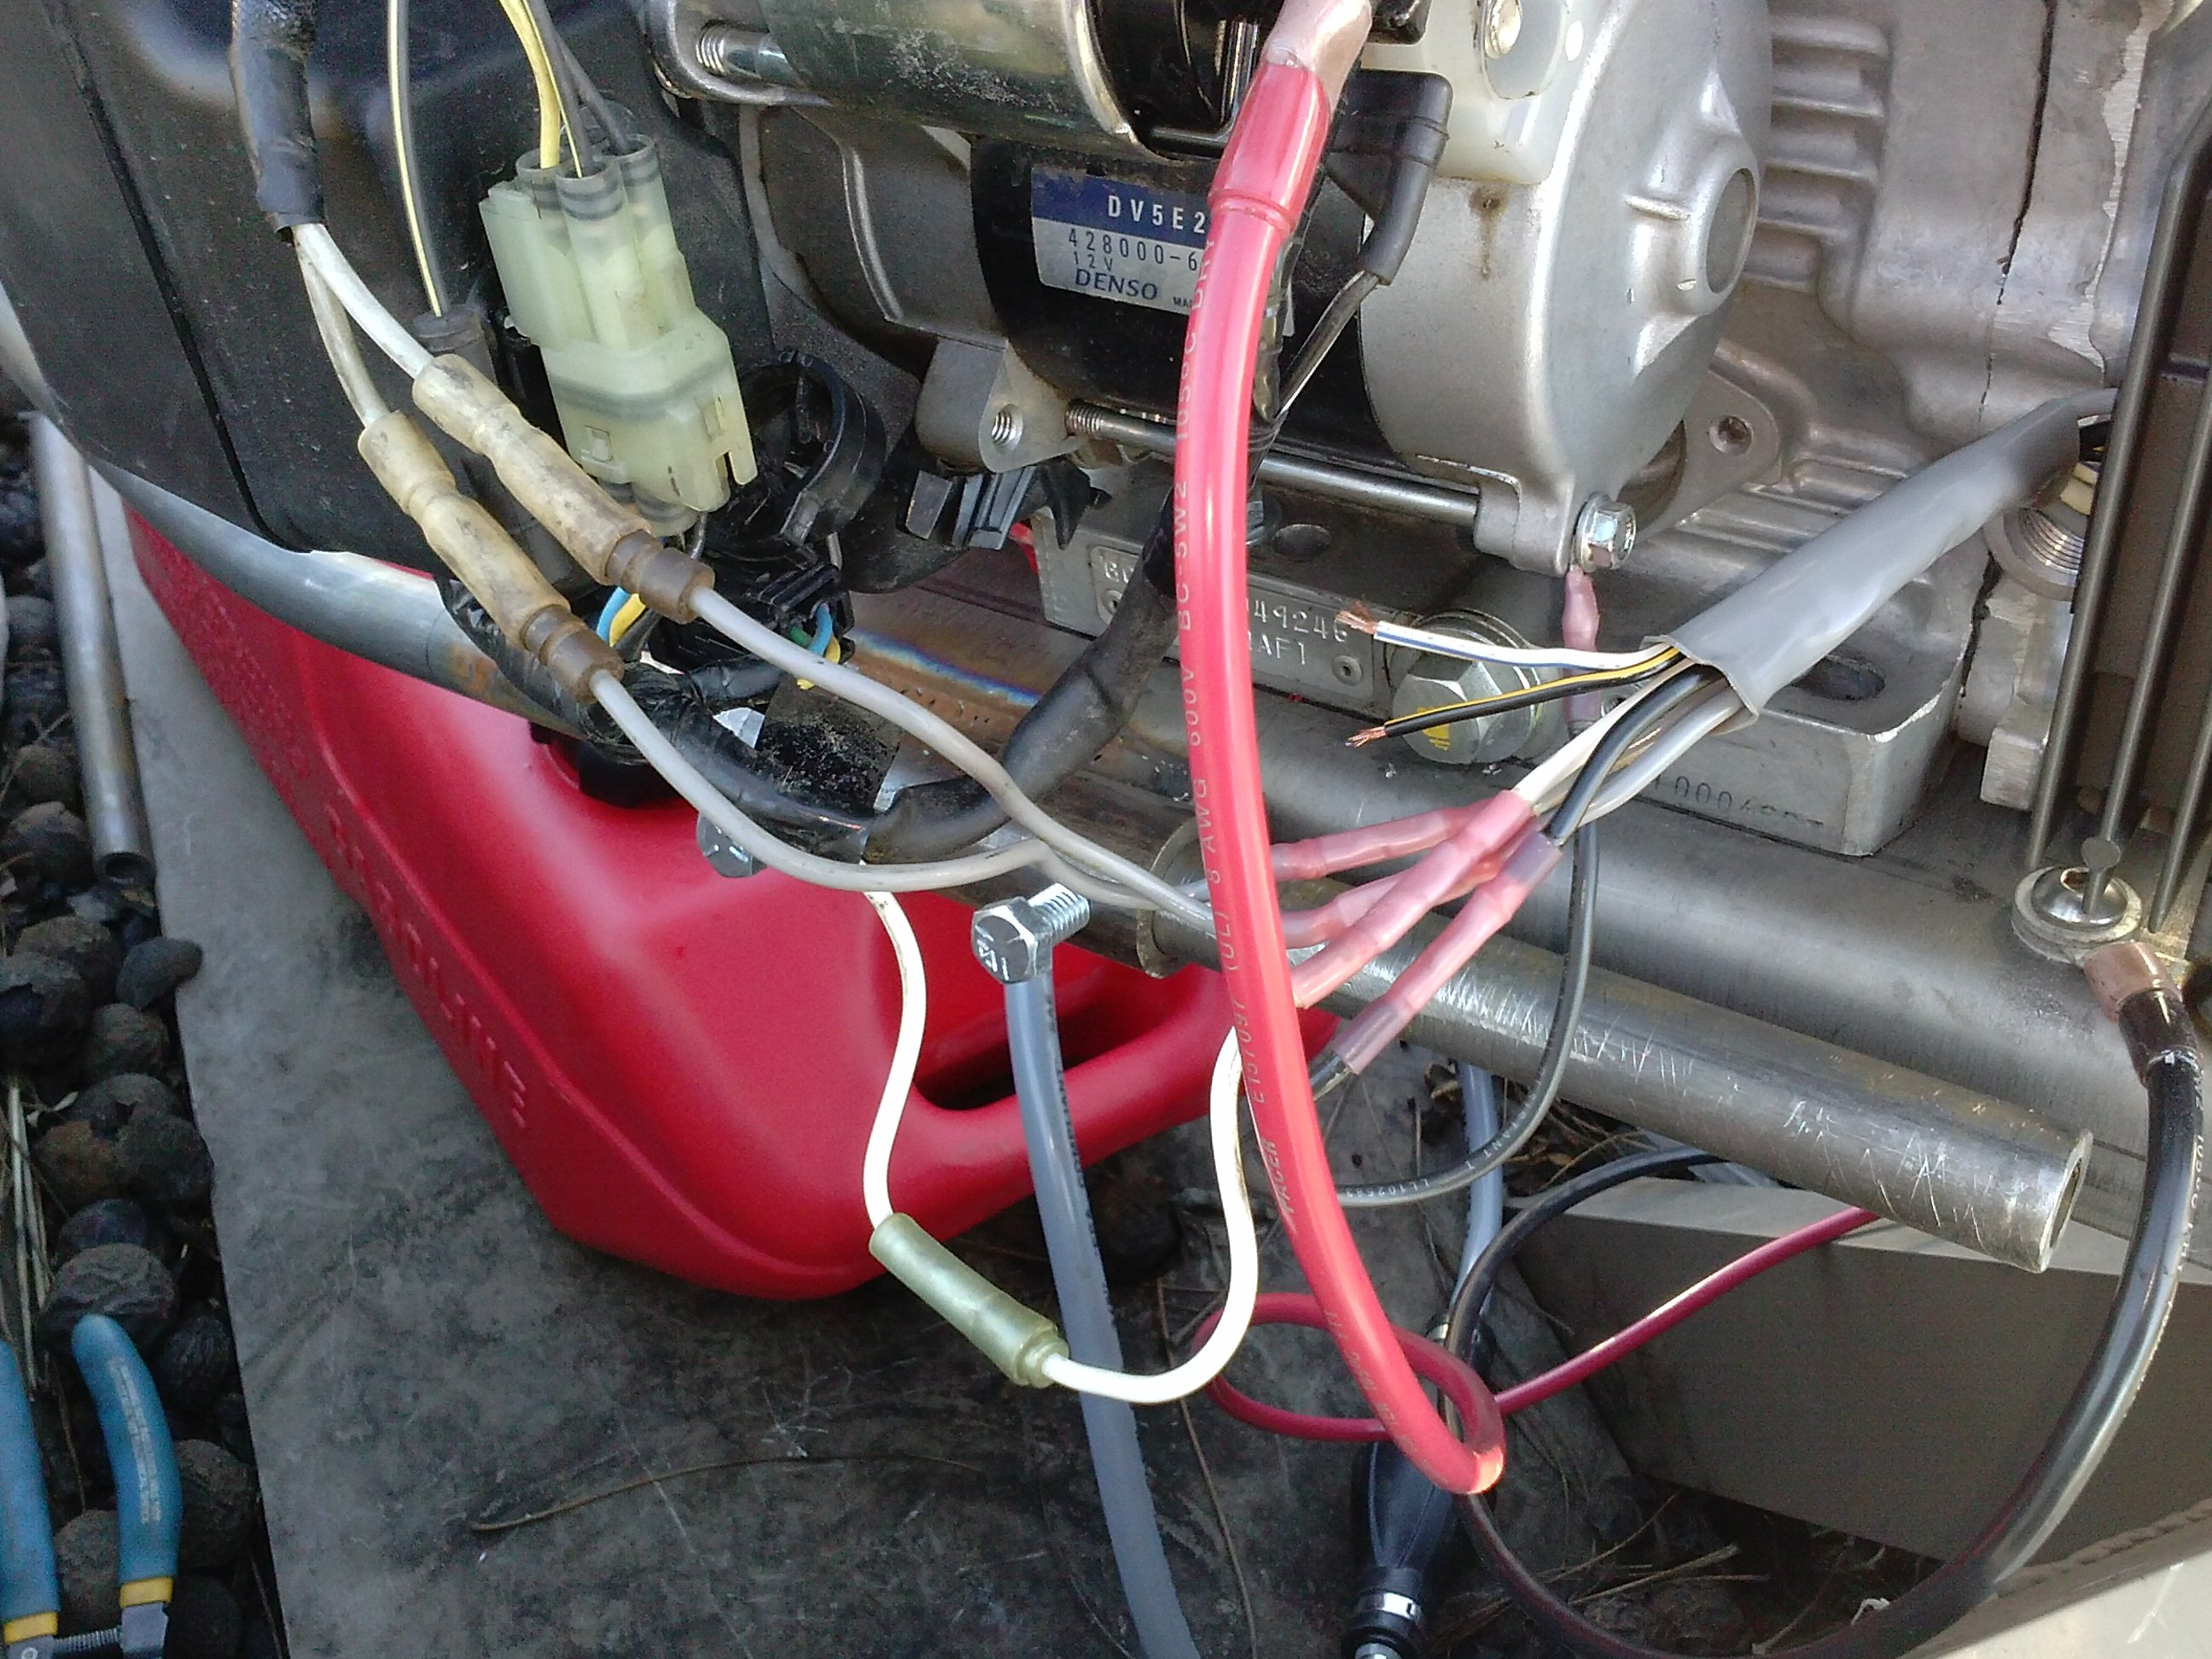 2013 12 01_204034_cam006151 i need help troubleshooting the charging system on a honda gx630 honda gx630 engine wiring diagrams at bayanpartner.co